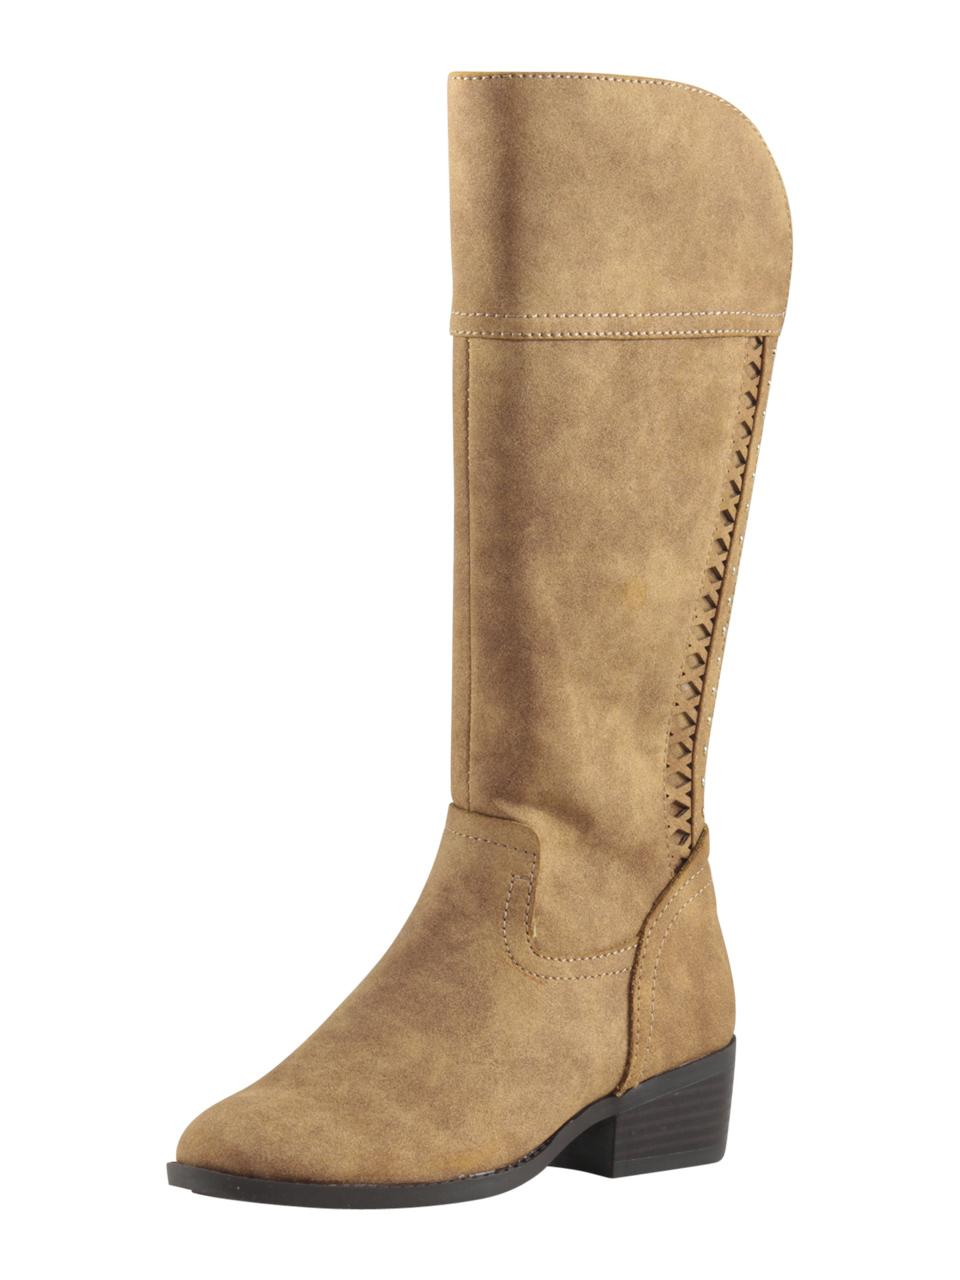 eb1ff17f1 Vince Camuto Little/Big Girl's Beeja Boots Shoes